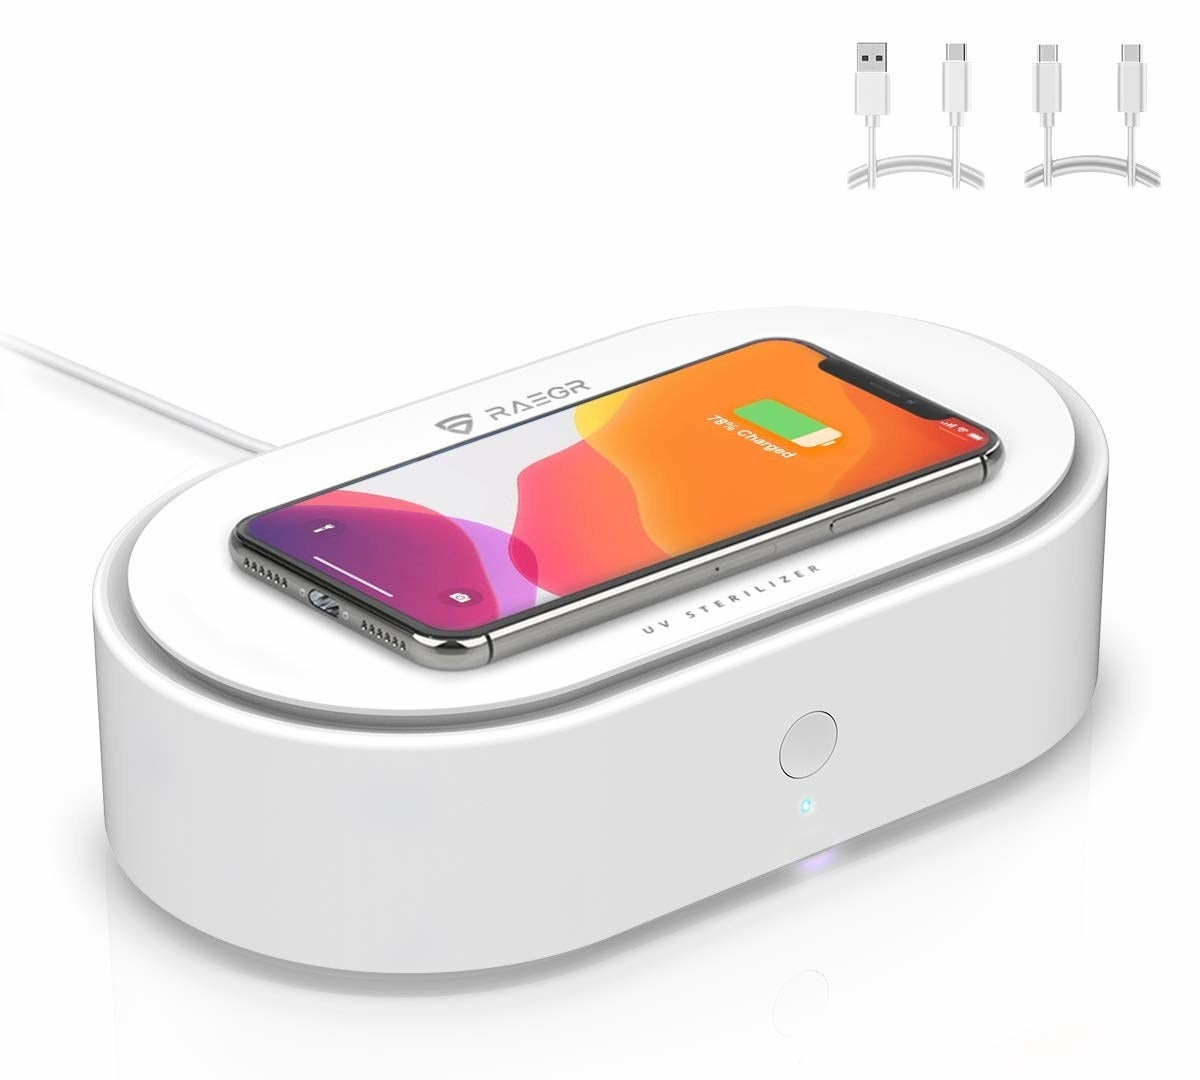 A white RAEGR Arc 1500 device with an iPhone being wirelessly charged on it